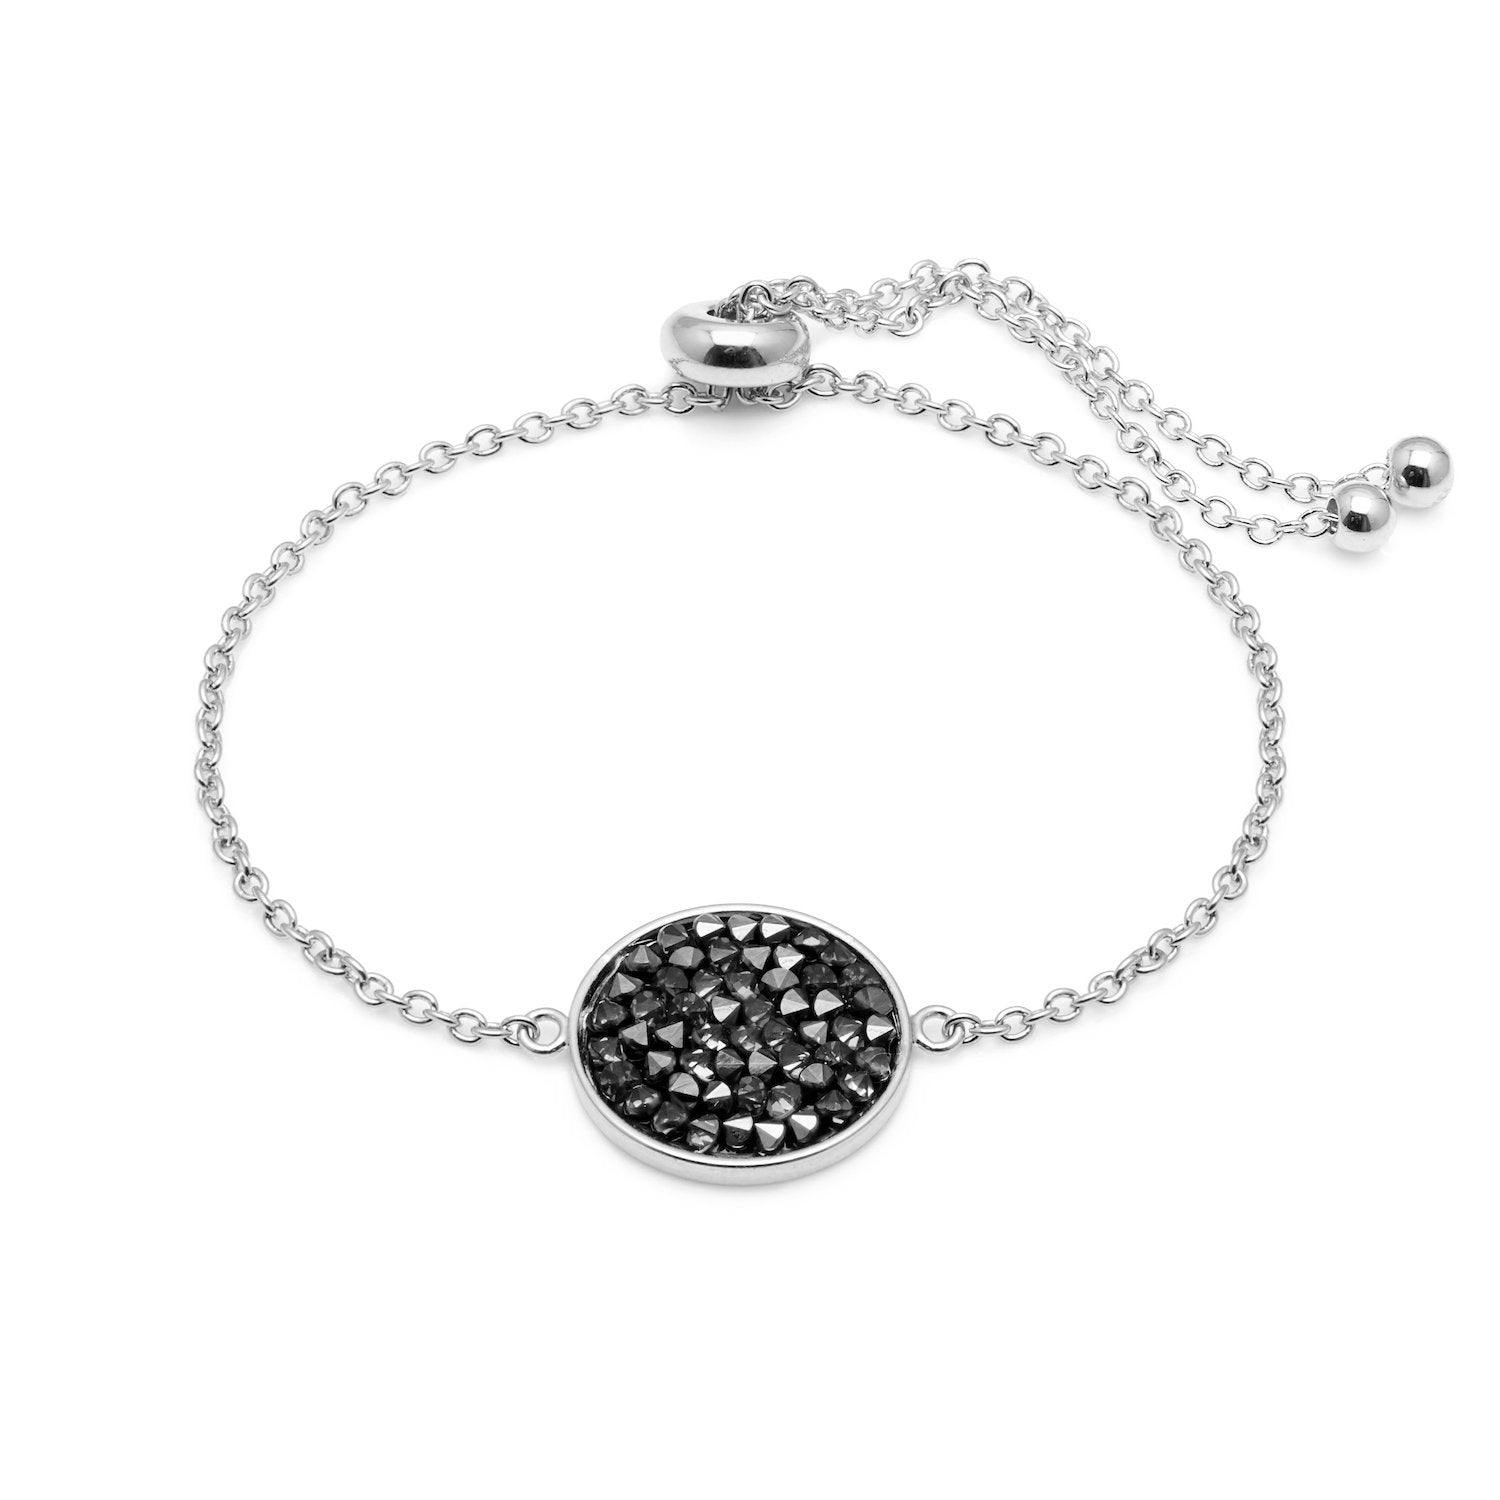 "Aura ""Aurora"" 18k White Gold Plated Metallic Silver Swarovski Crystal Bracelet, Adjustable 8"""